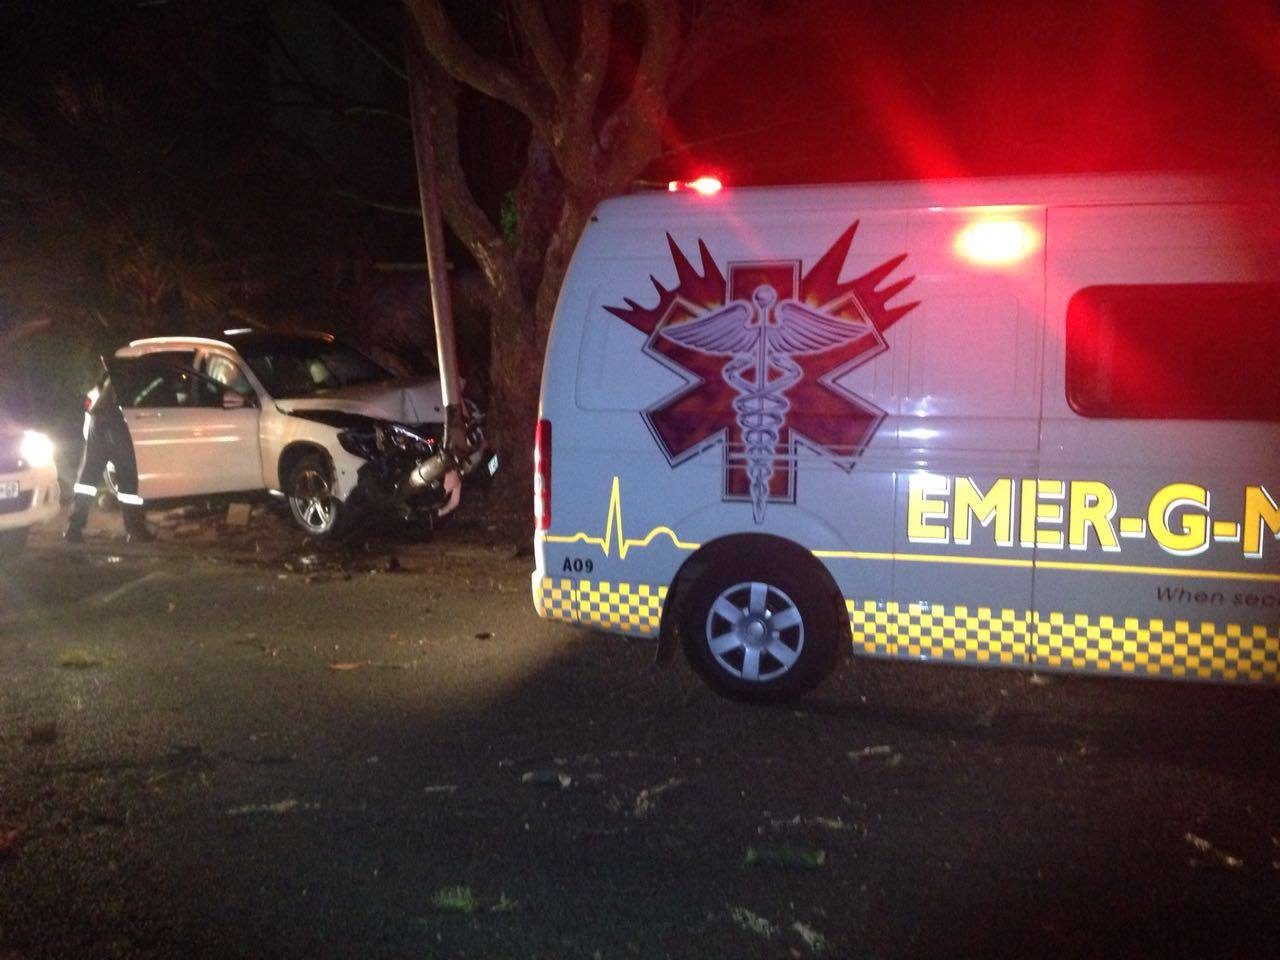 One injured as vehicle crashes into a street light and tree in Melrose